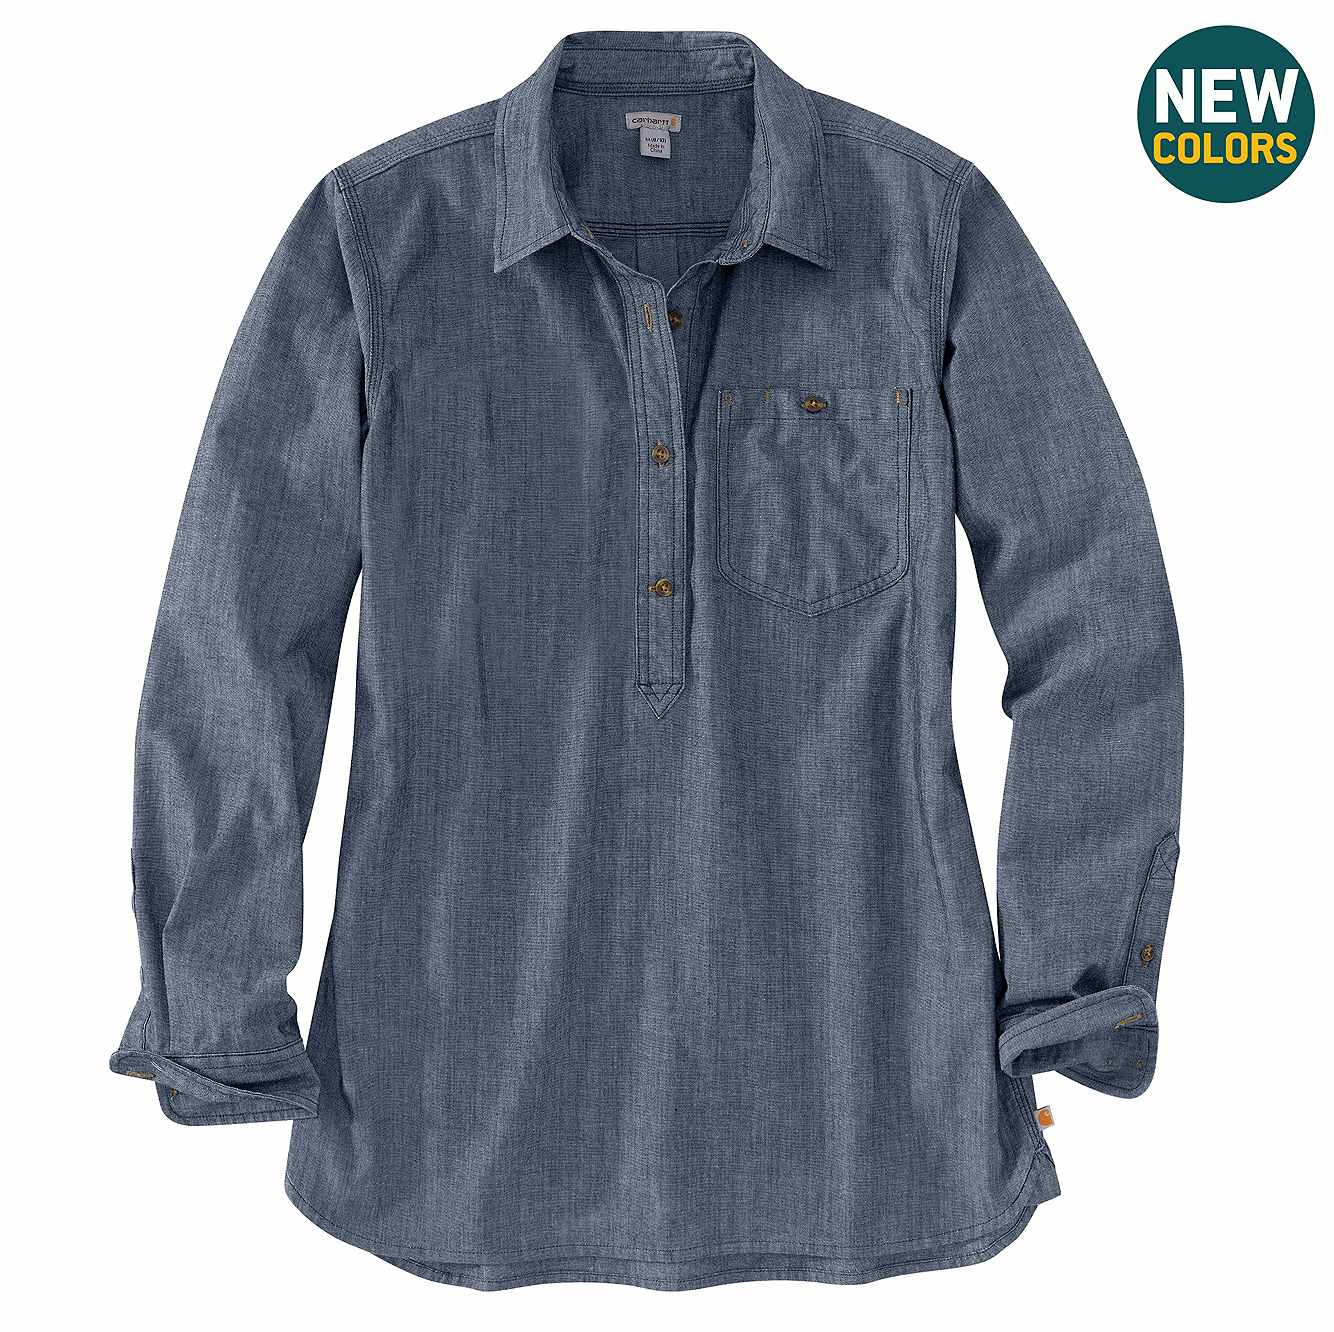 Picture of Rugged Flex® Relaxed Fit Long-Sleeve Shirt in Indigo Chambray